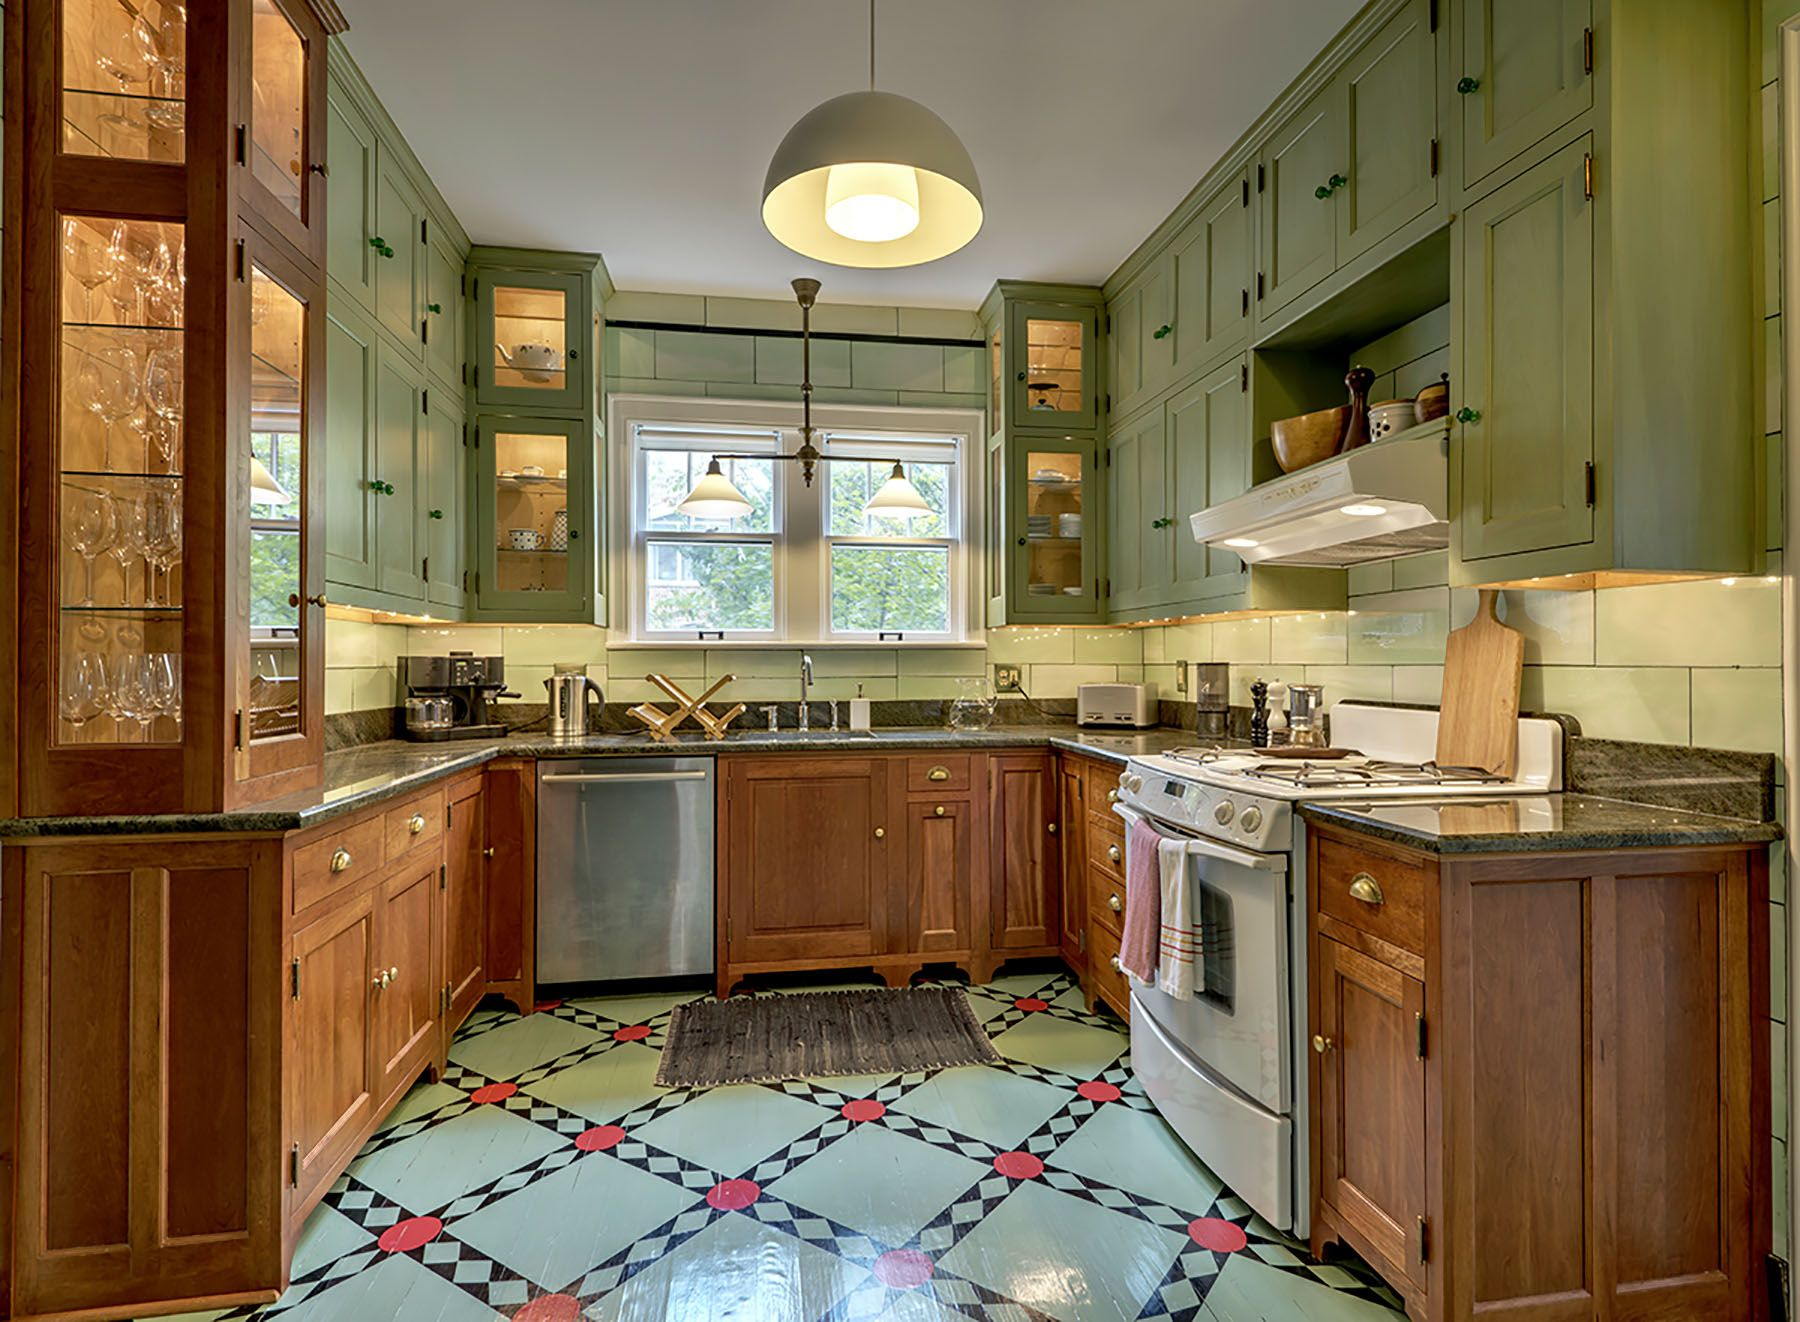 Refinishing Kitchen Cabinets With Milk Paint Pros And Cons Popular Woodworking Magazine Milk Paint Kitchen Cabinets Refinish Kitchen Cabinets Custom Kitchen Cabinets